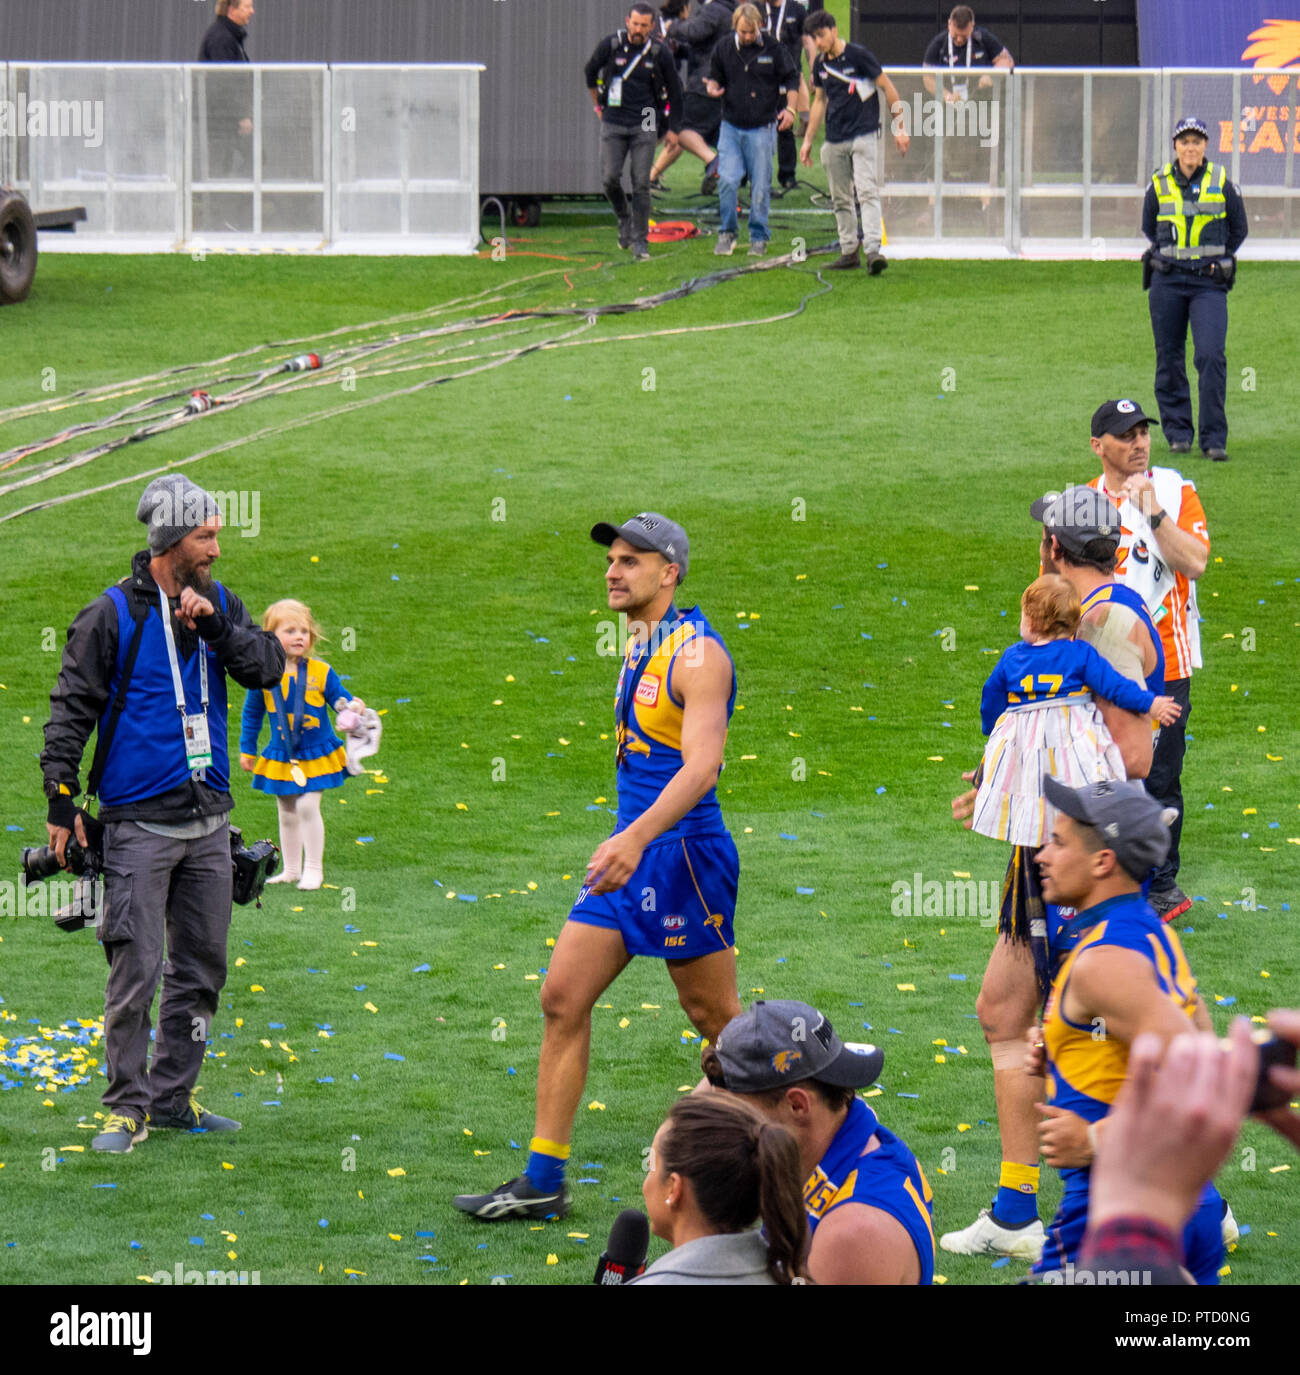 West Coast Eagles premiership players Dom Sheed and Liam Duggan celebrating after 2018 AFL Grand Final at MCG Melbourne Victoria Australia. - Stock Image